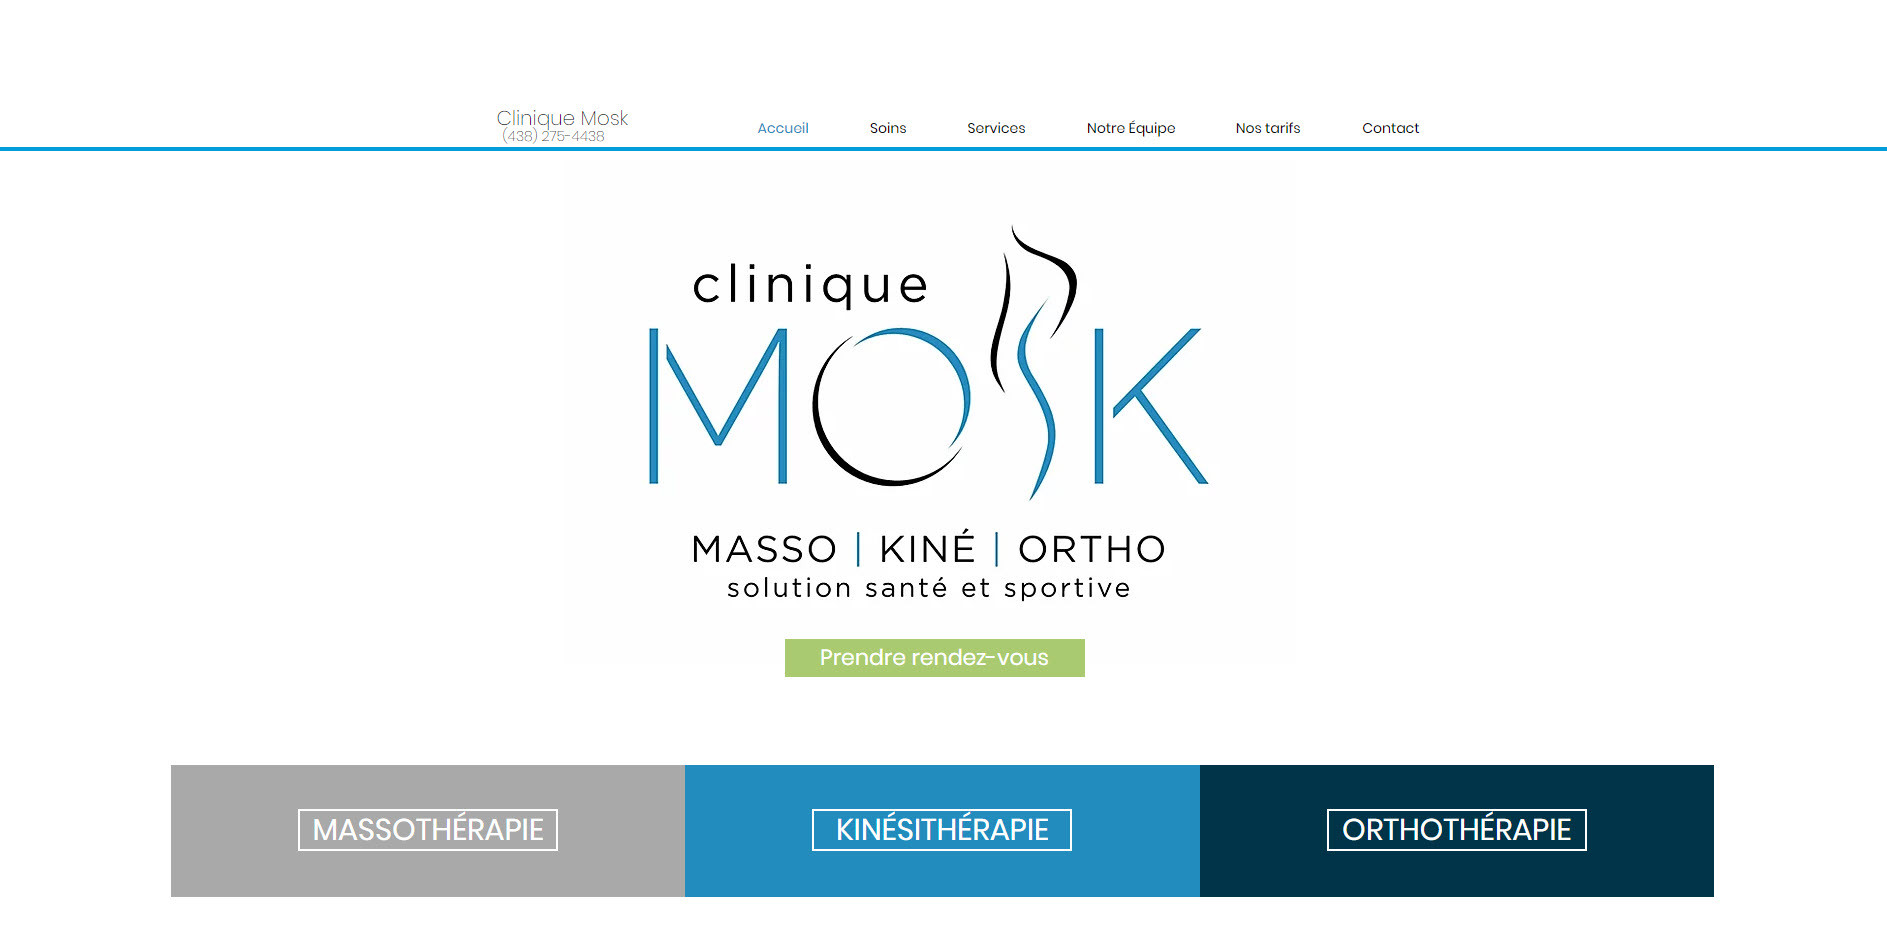 Clinique Mosk